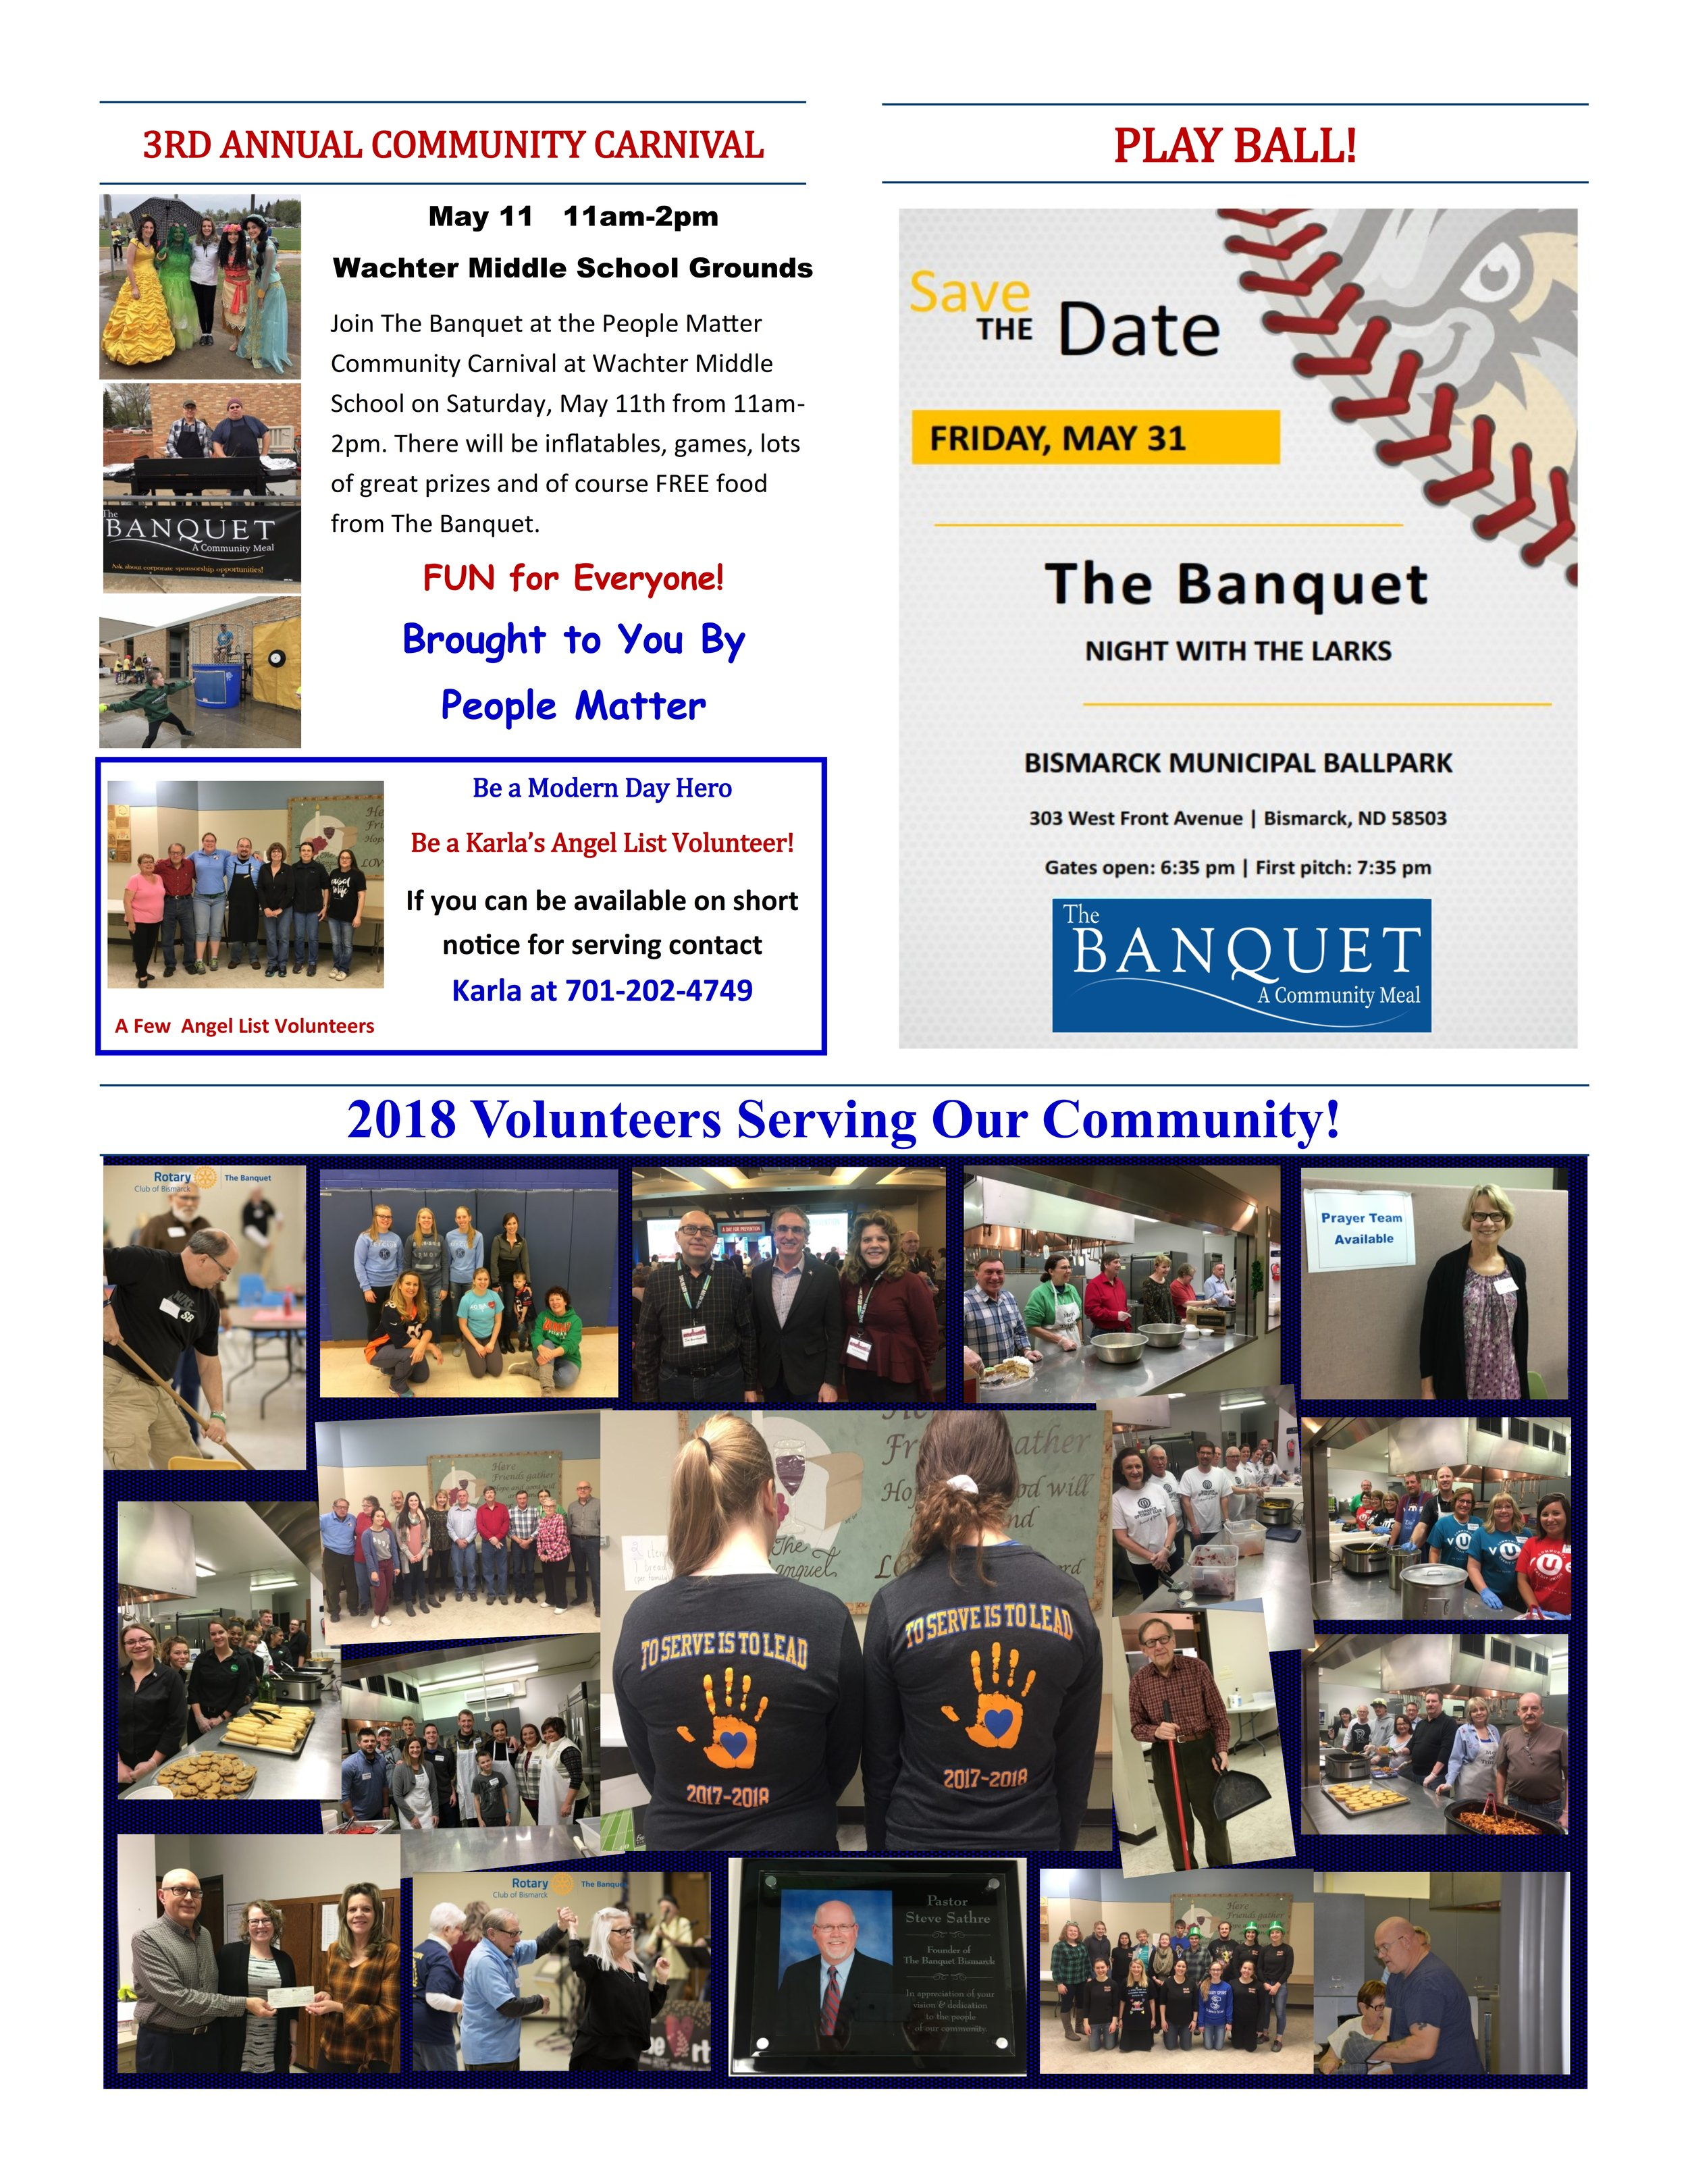 Banquet Newsletter-8x11-Jan. 2019-With Extra Page Added-FINAL TO IMAGE PRINTING_001.jpg